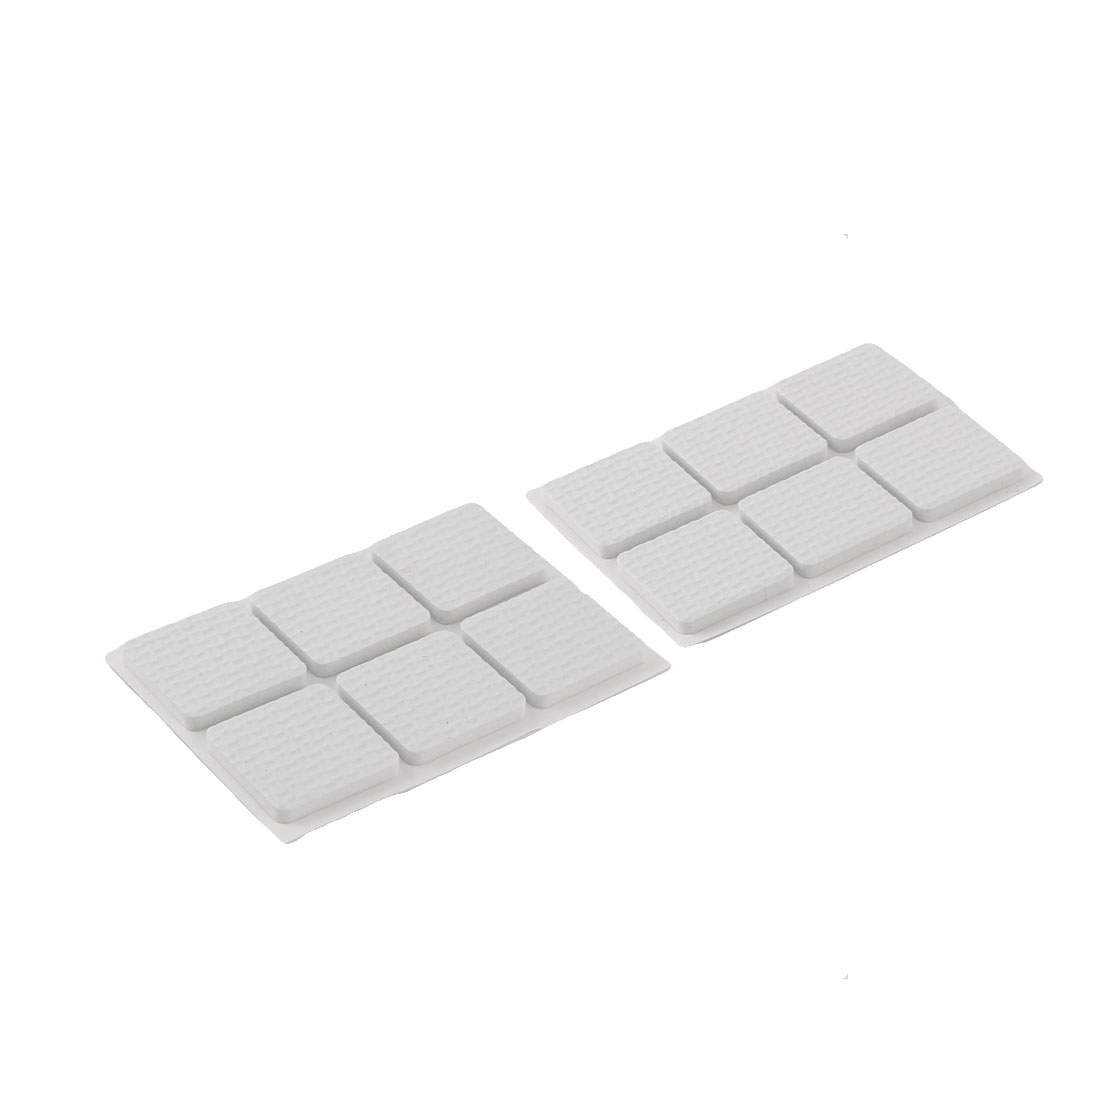 Floor EVA Square Anti Slip Table Chair Furniture Feet Pads Cover Protector White 30 x 30mm 12pcs